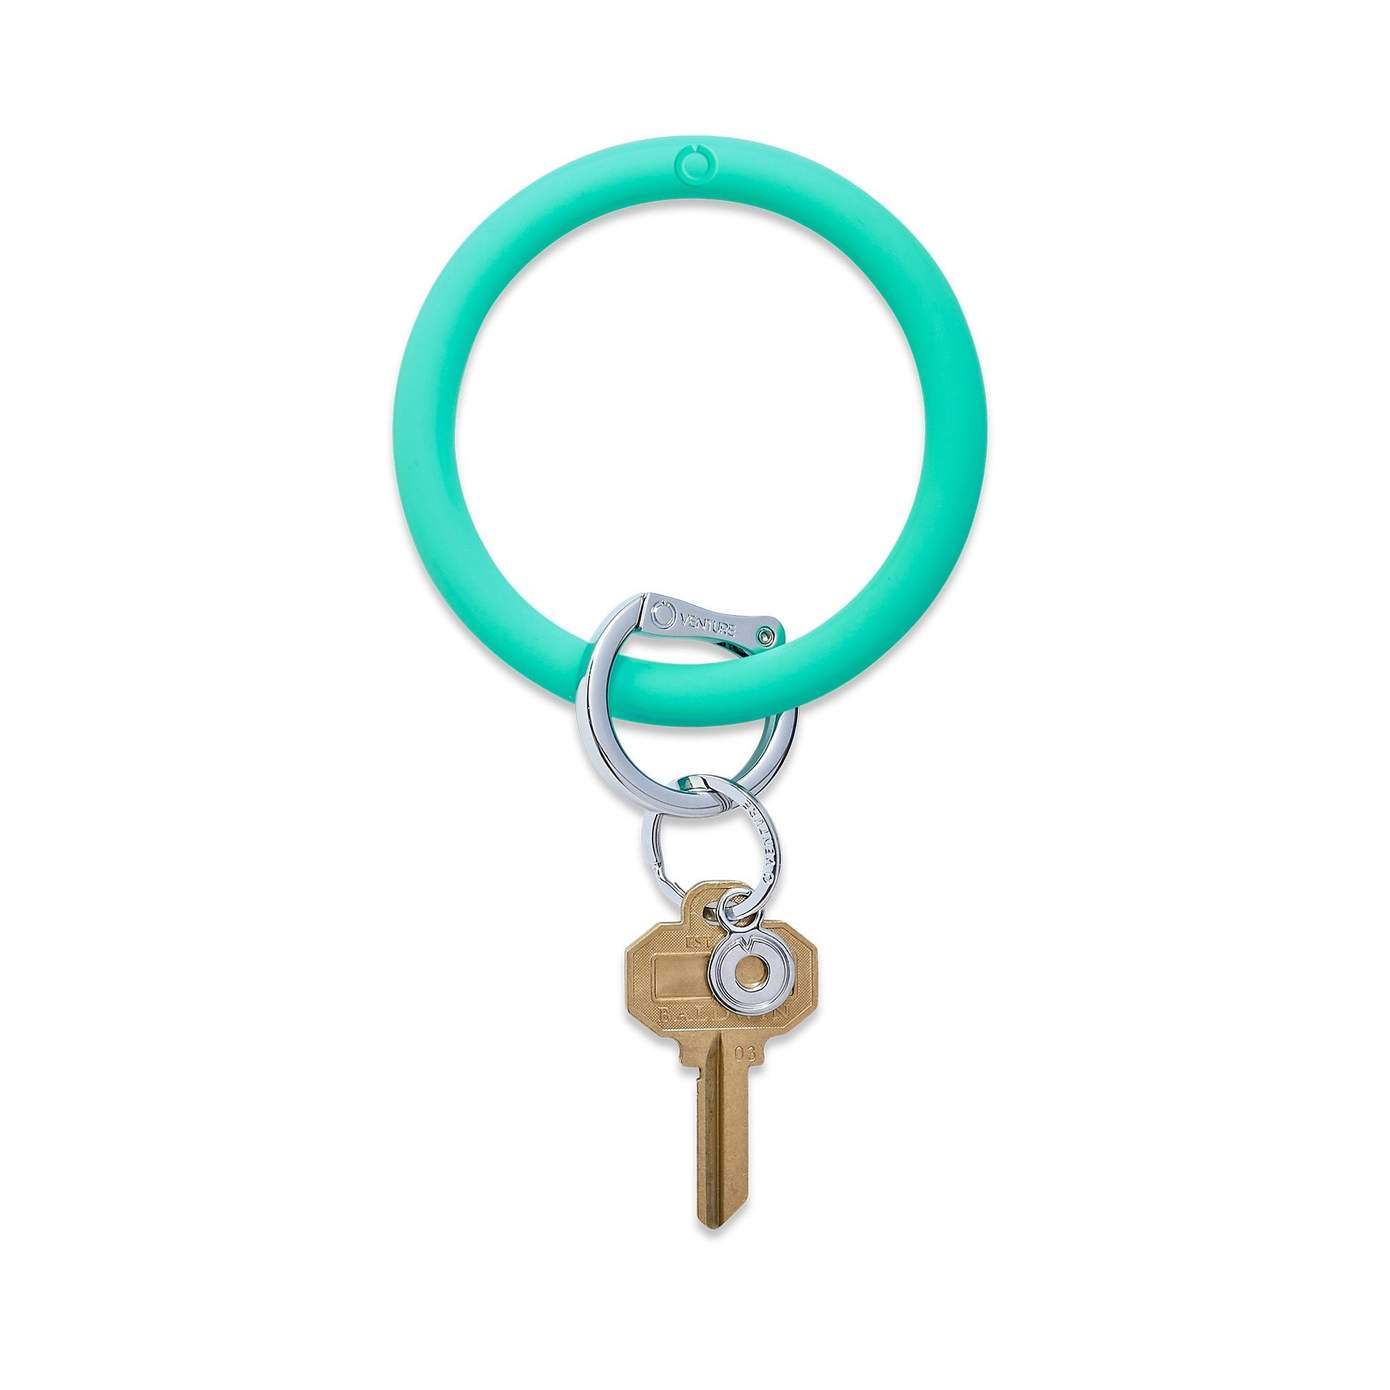 Oventure Key Ring - Provisions Mercantile